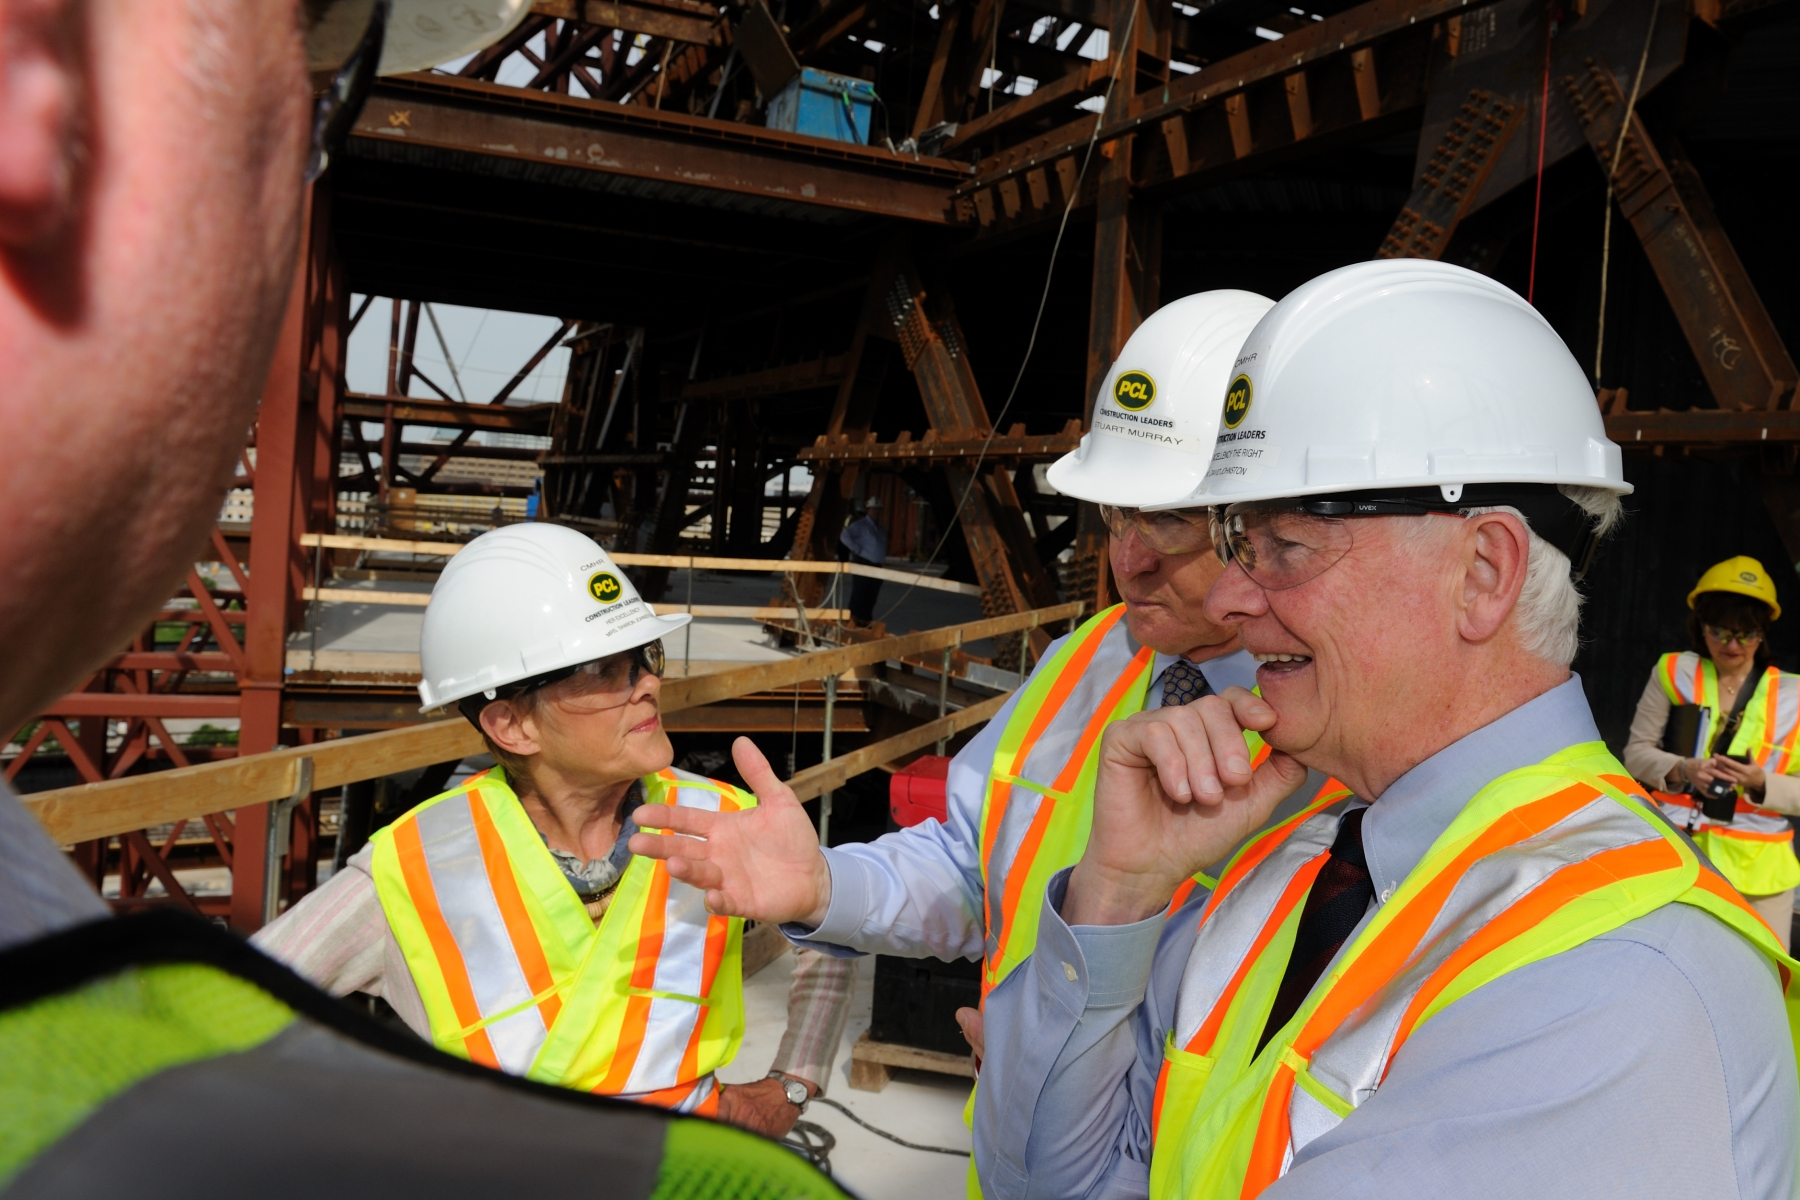 During the second day of their official visit to Manitoba, Their Excellencies visited the Canadian Museum of Human Rights, currently under construction.